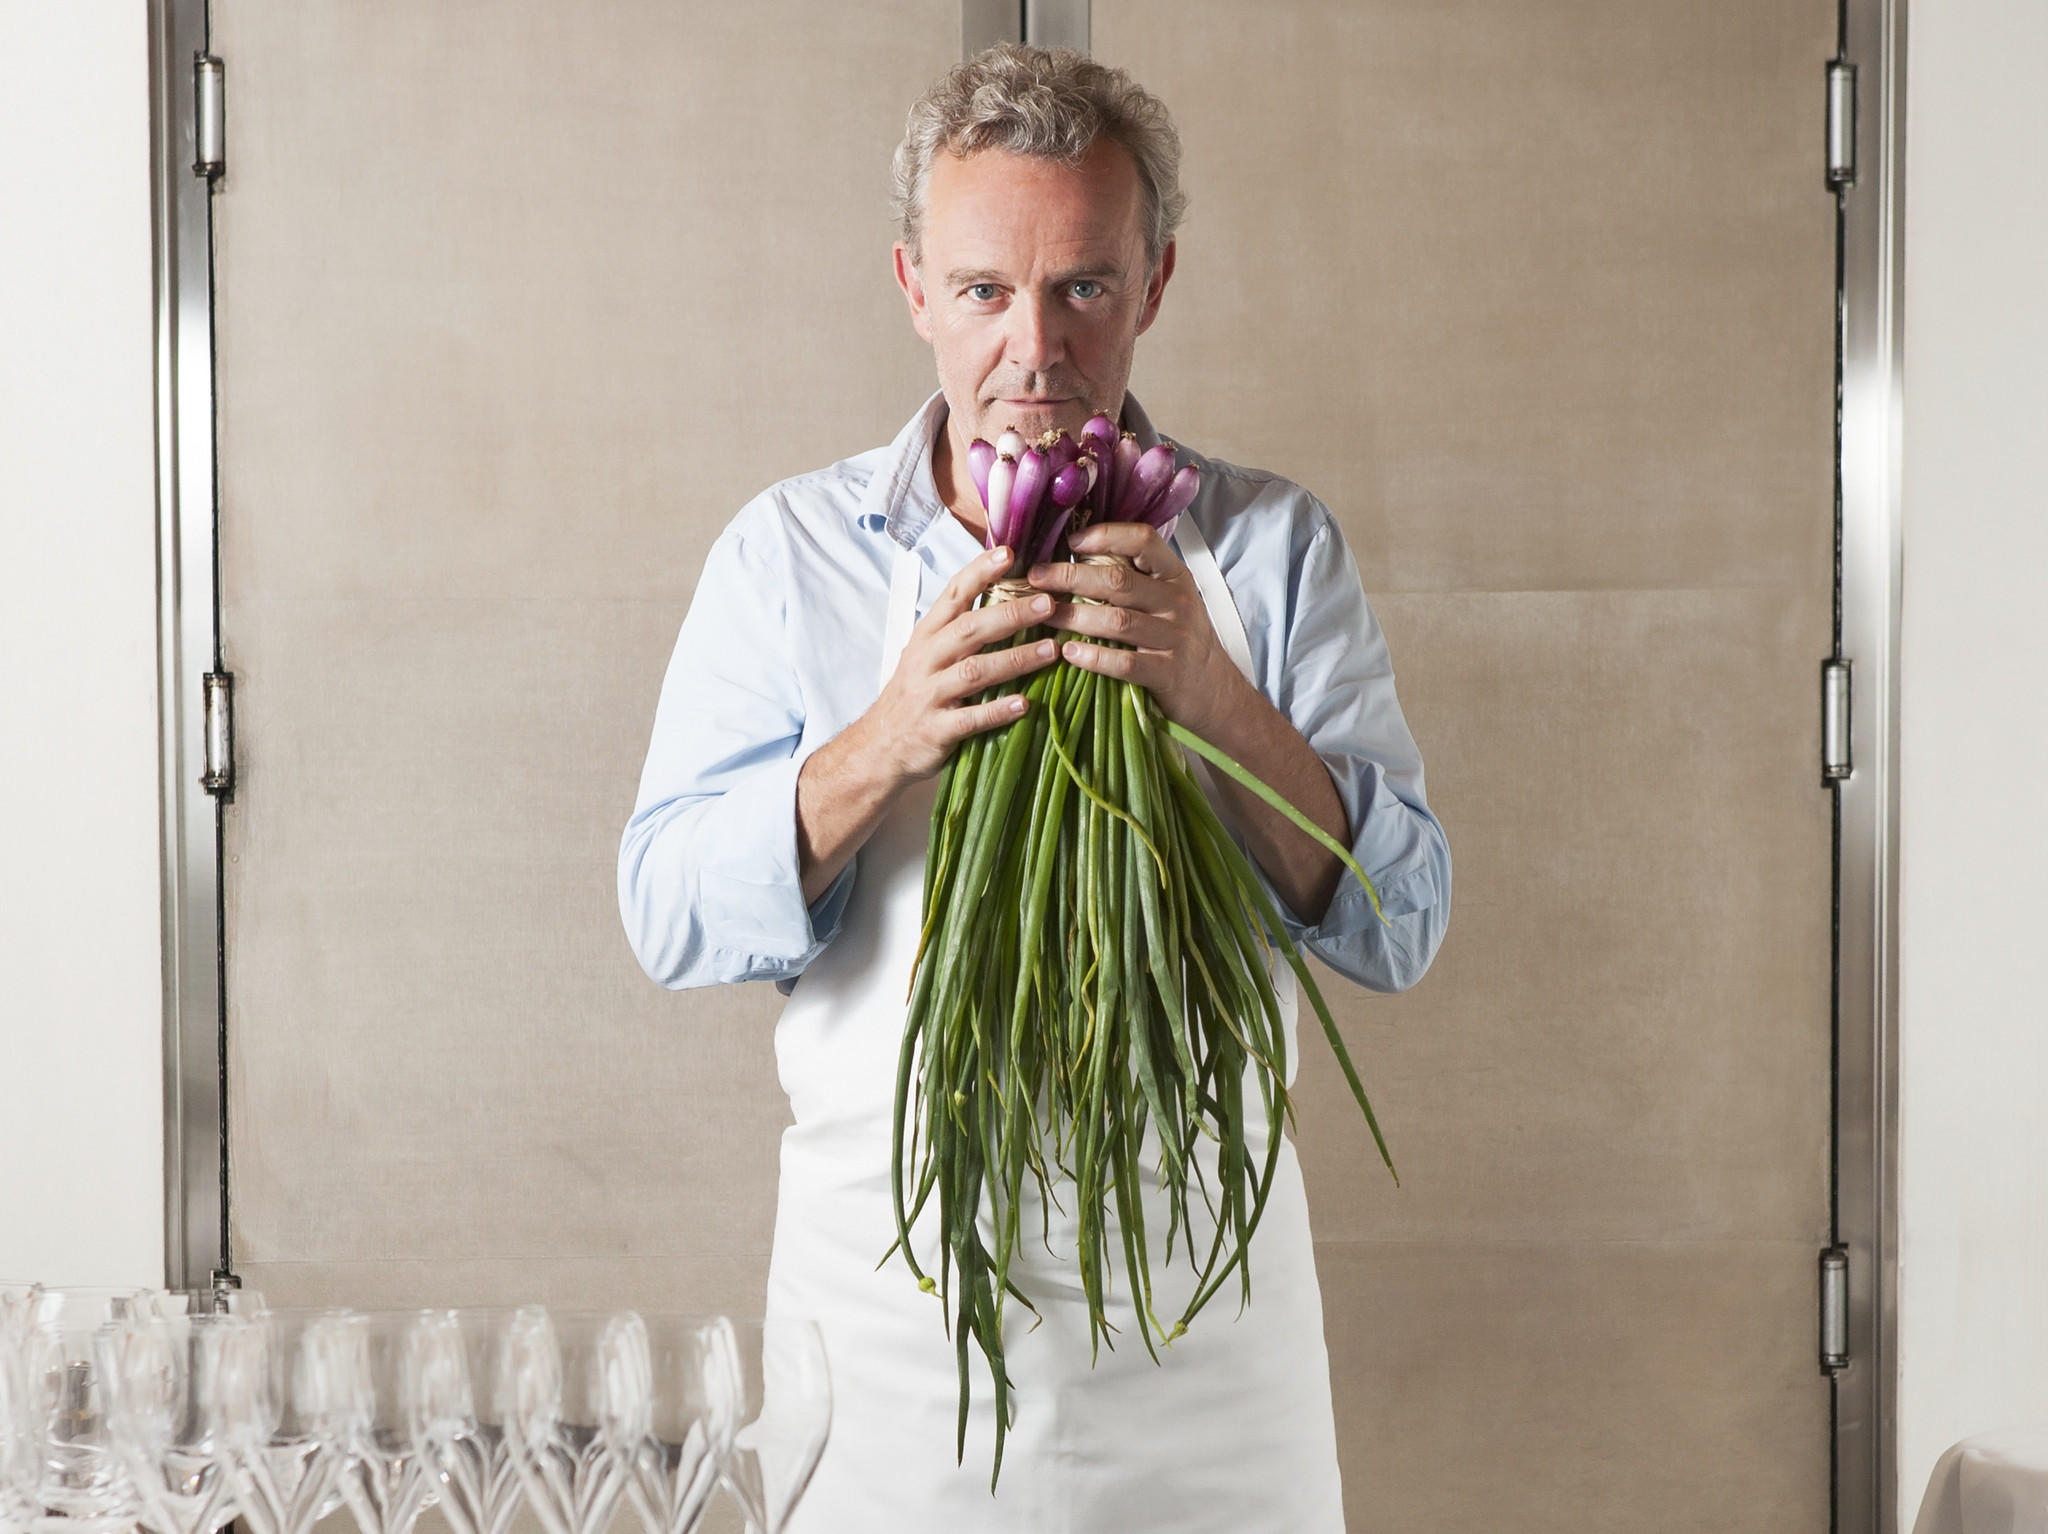 Chef Alain Passard of l'Arpege in Paris is known for his cuisine a la vegetable.